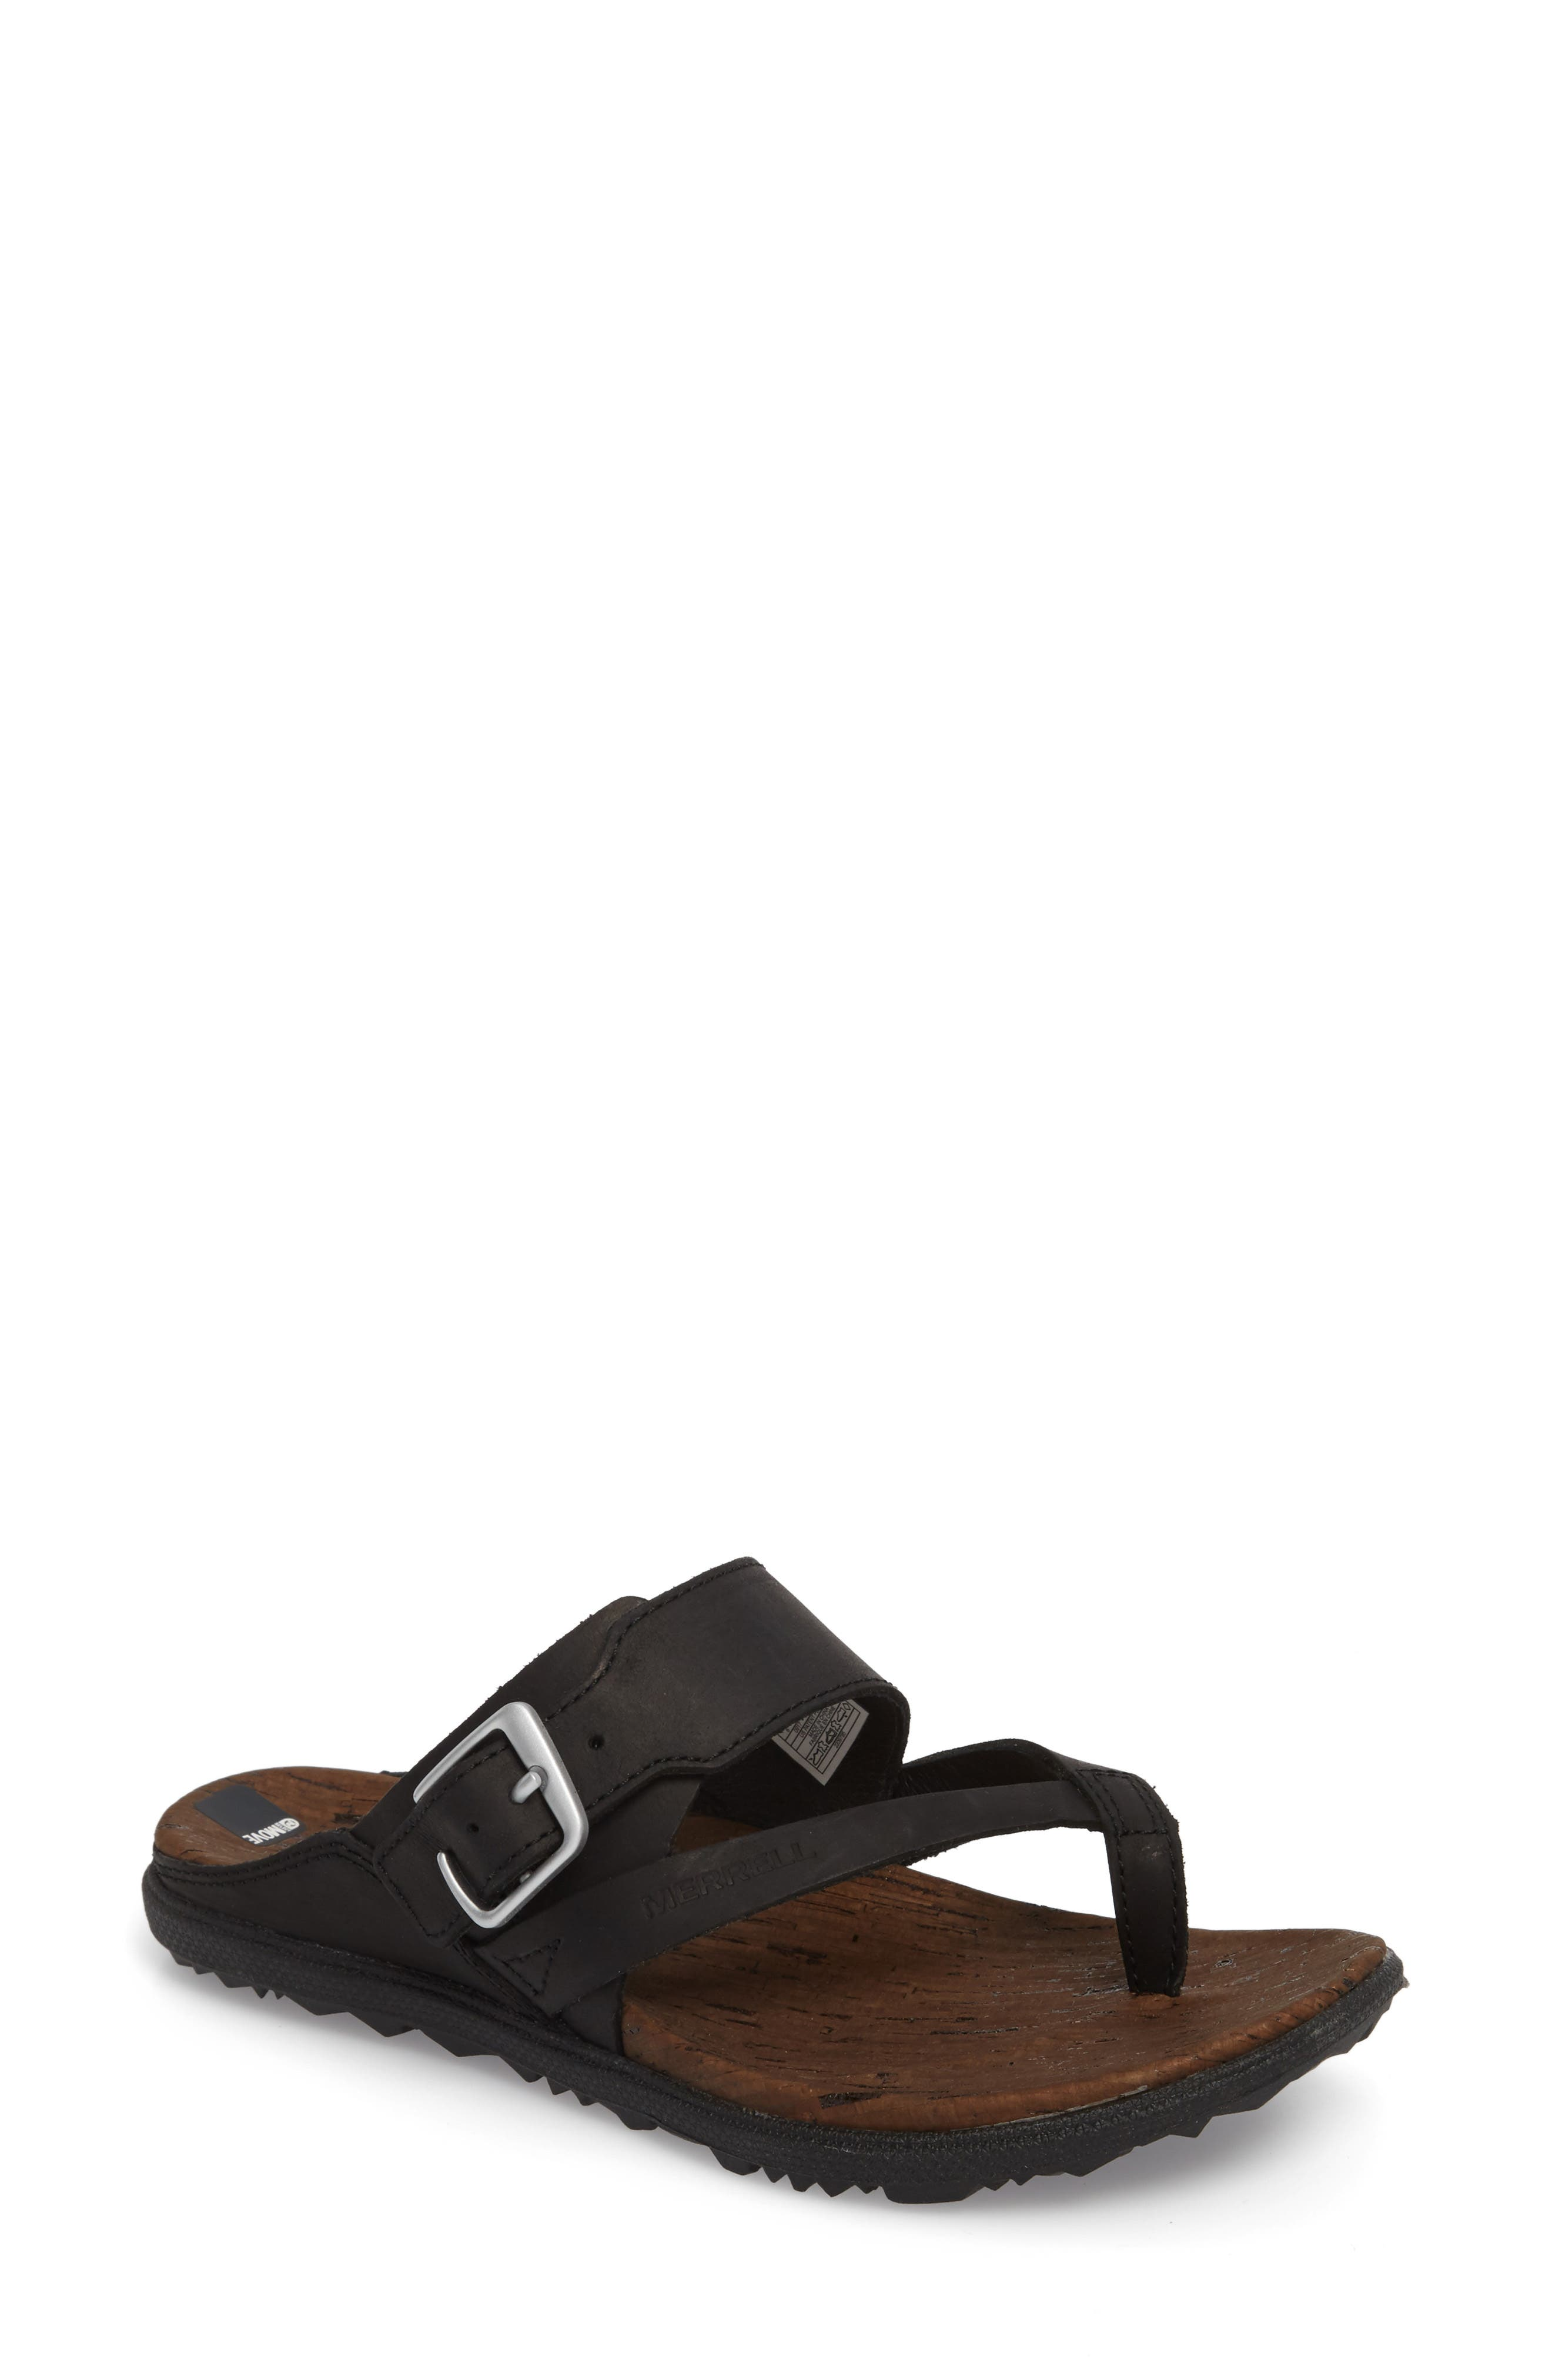 Around Town Buckle Slide Sandal,                         Main,                         color, 001